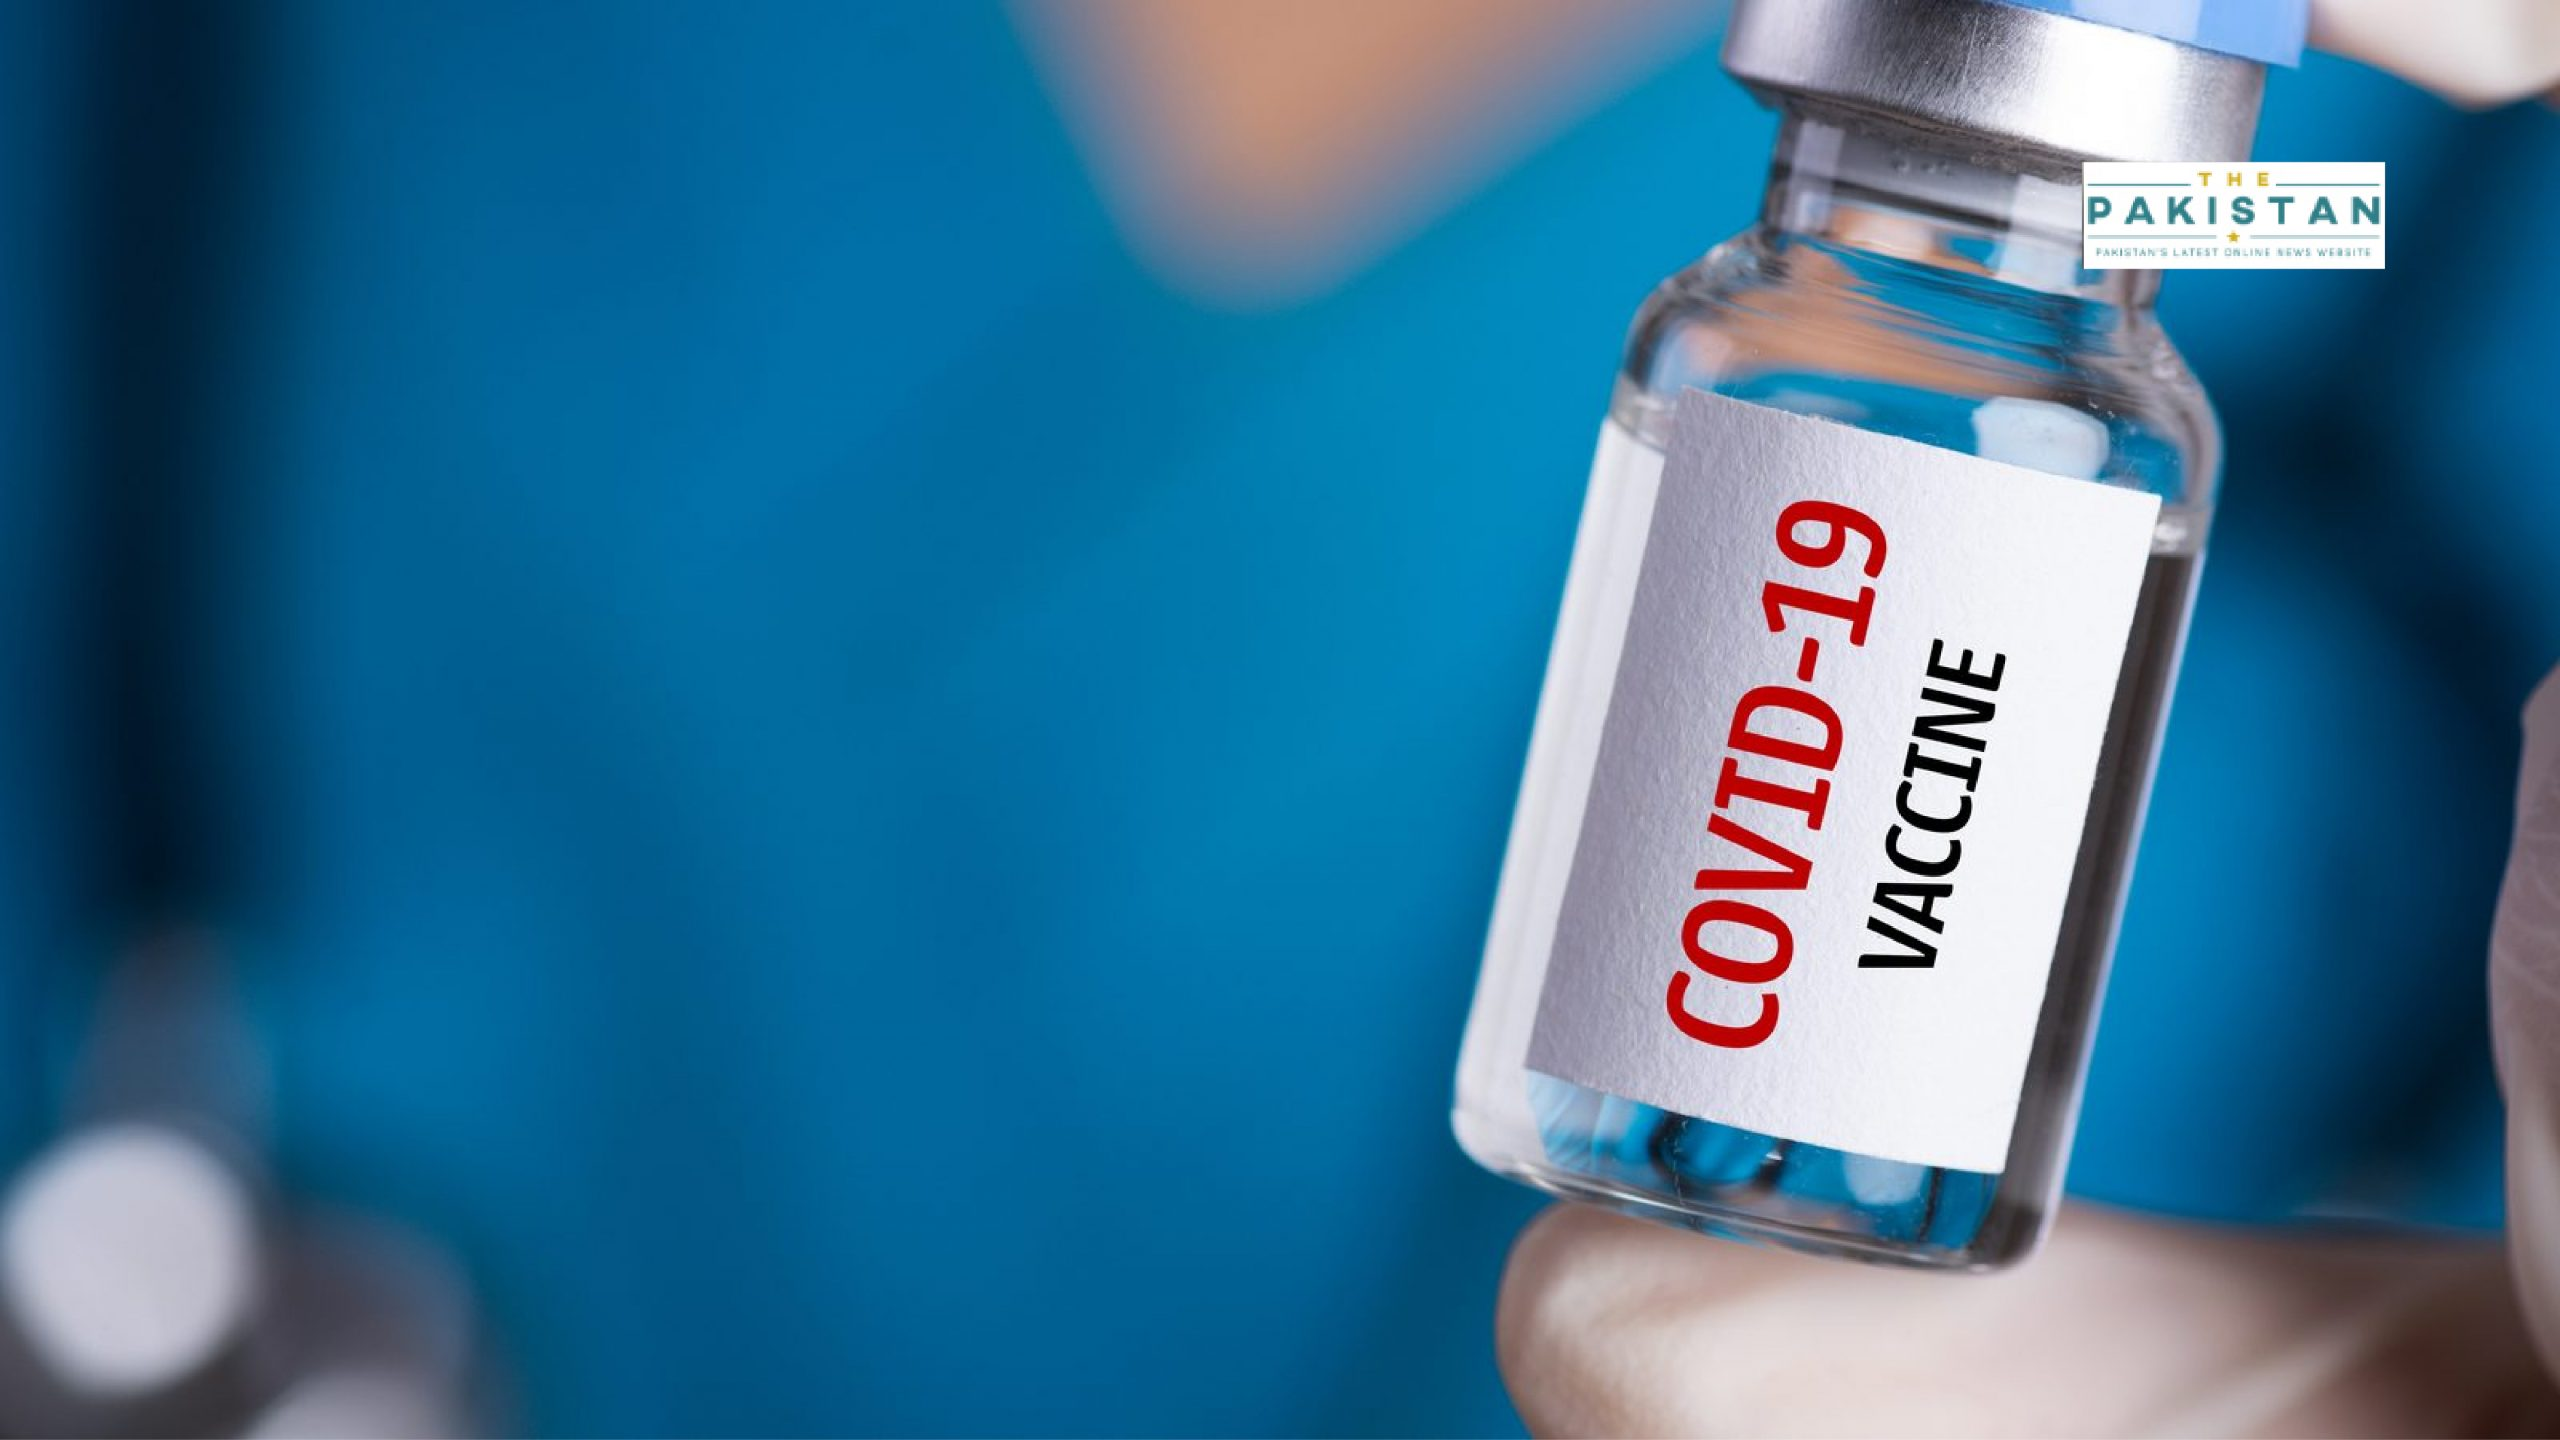 Govt to administer COVID-19 vaccine for free: Faisal Sultan